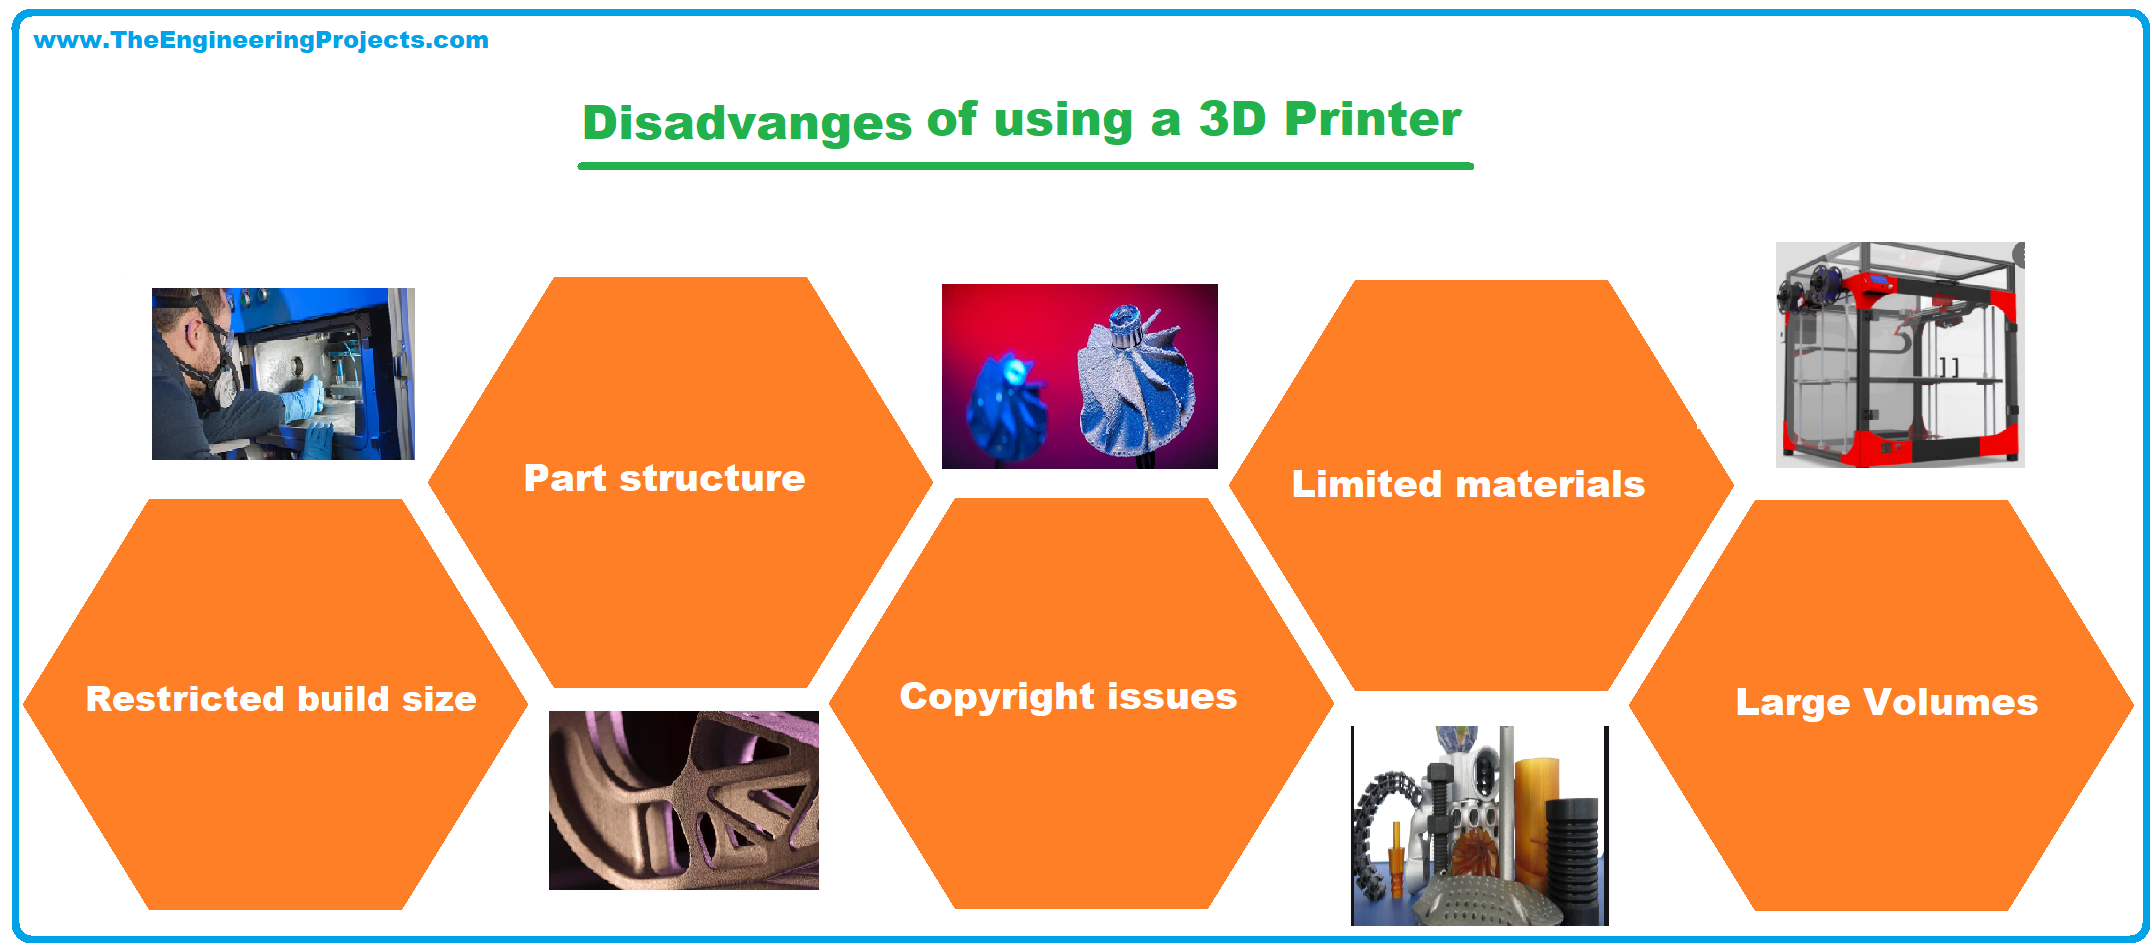 3D Printer, what is 3D Printer, working of 3D Printer, definition of 3D Printer, advantages of 3D Printer, disadvantages of 3D Printer, applications of 3D Printer, price of 3D Printer